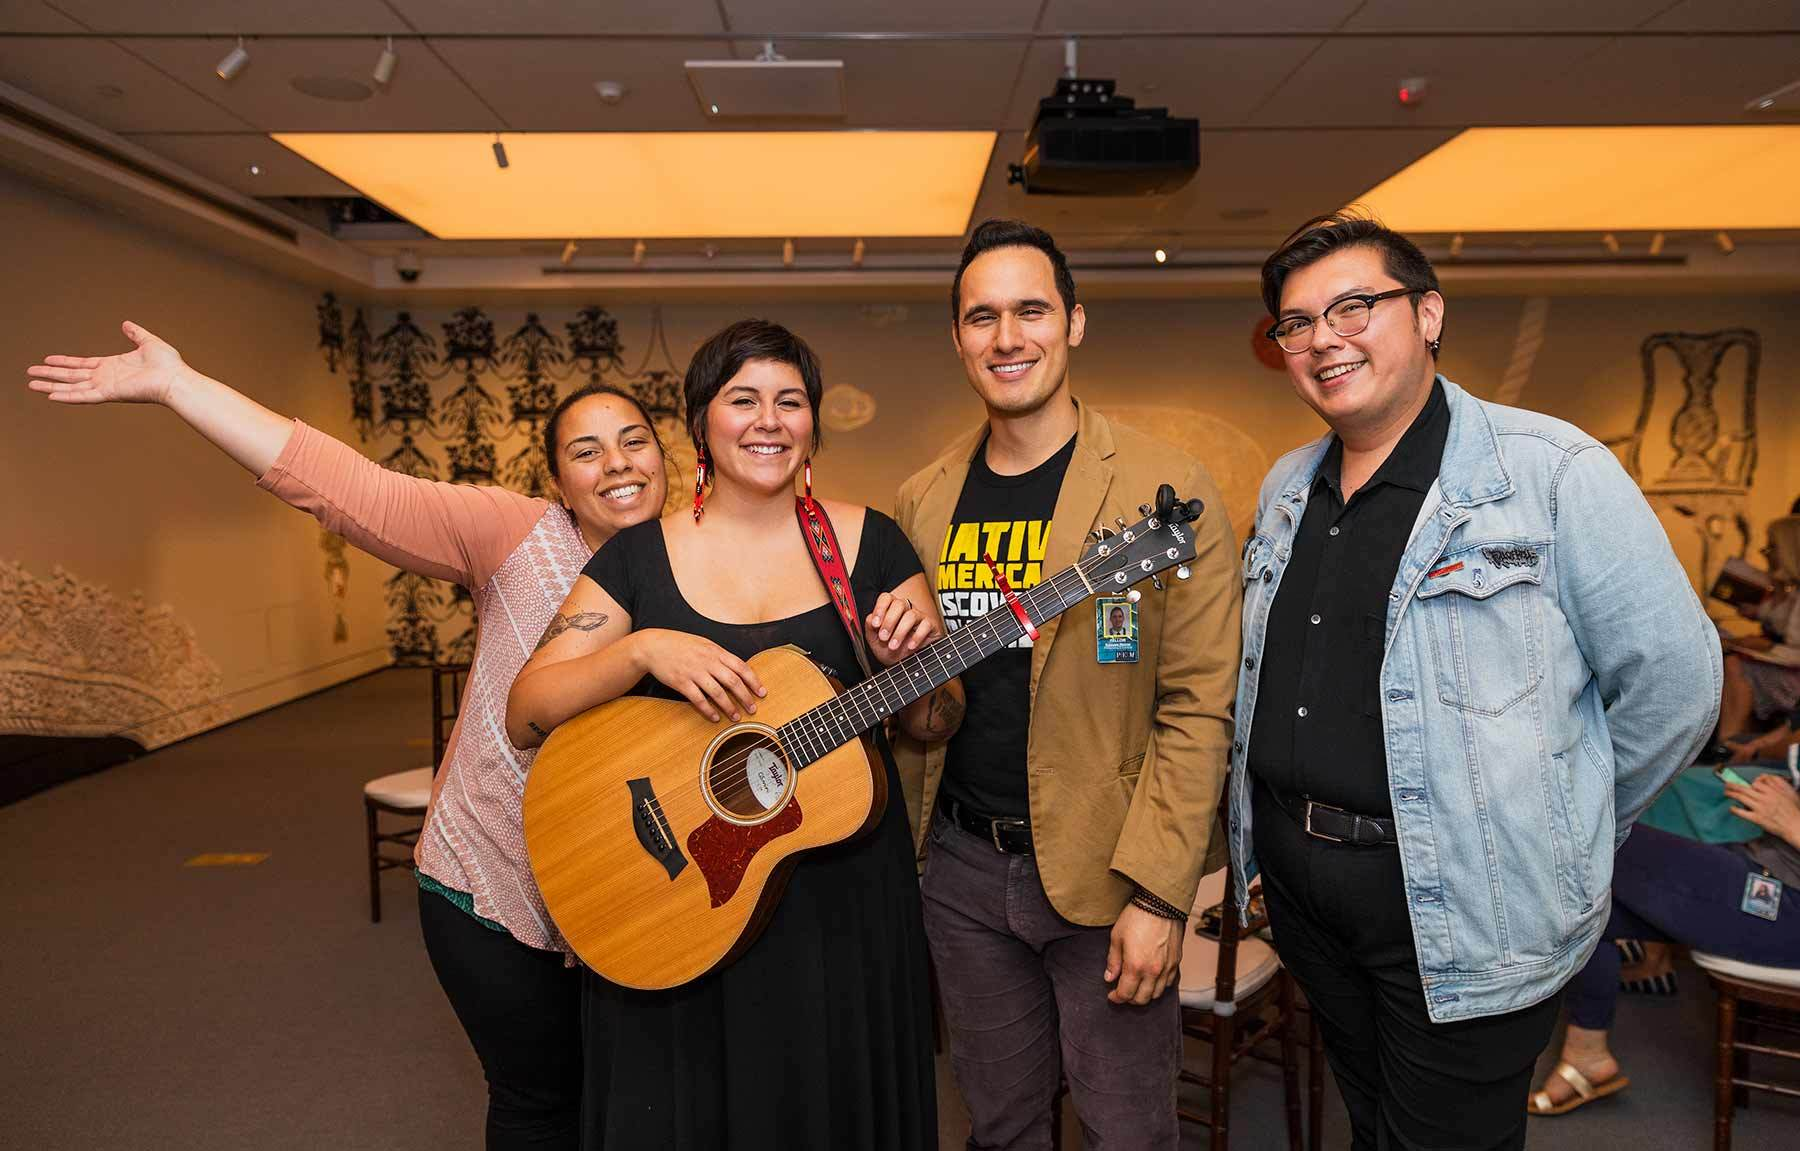 2019 Native American Fellows at the concert: Ashlyn Kuʻuleialoha Weaver, Kalyn Fay Barnoski, Kamuela Werner and Frank Redner